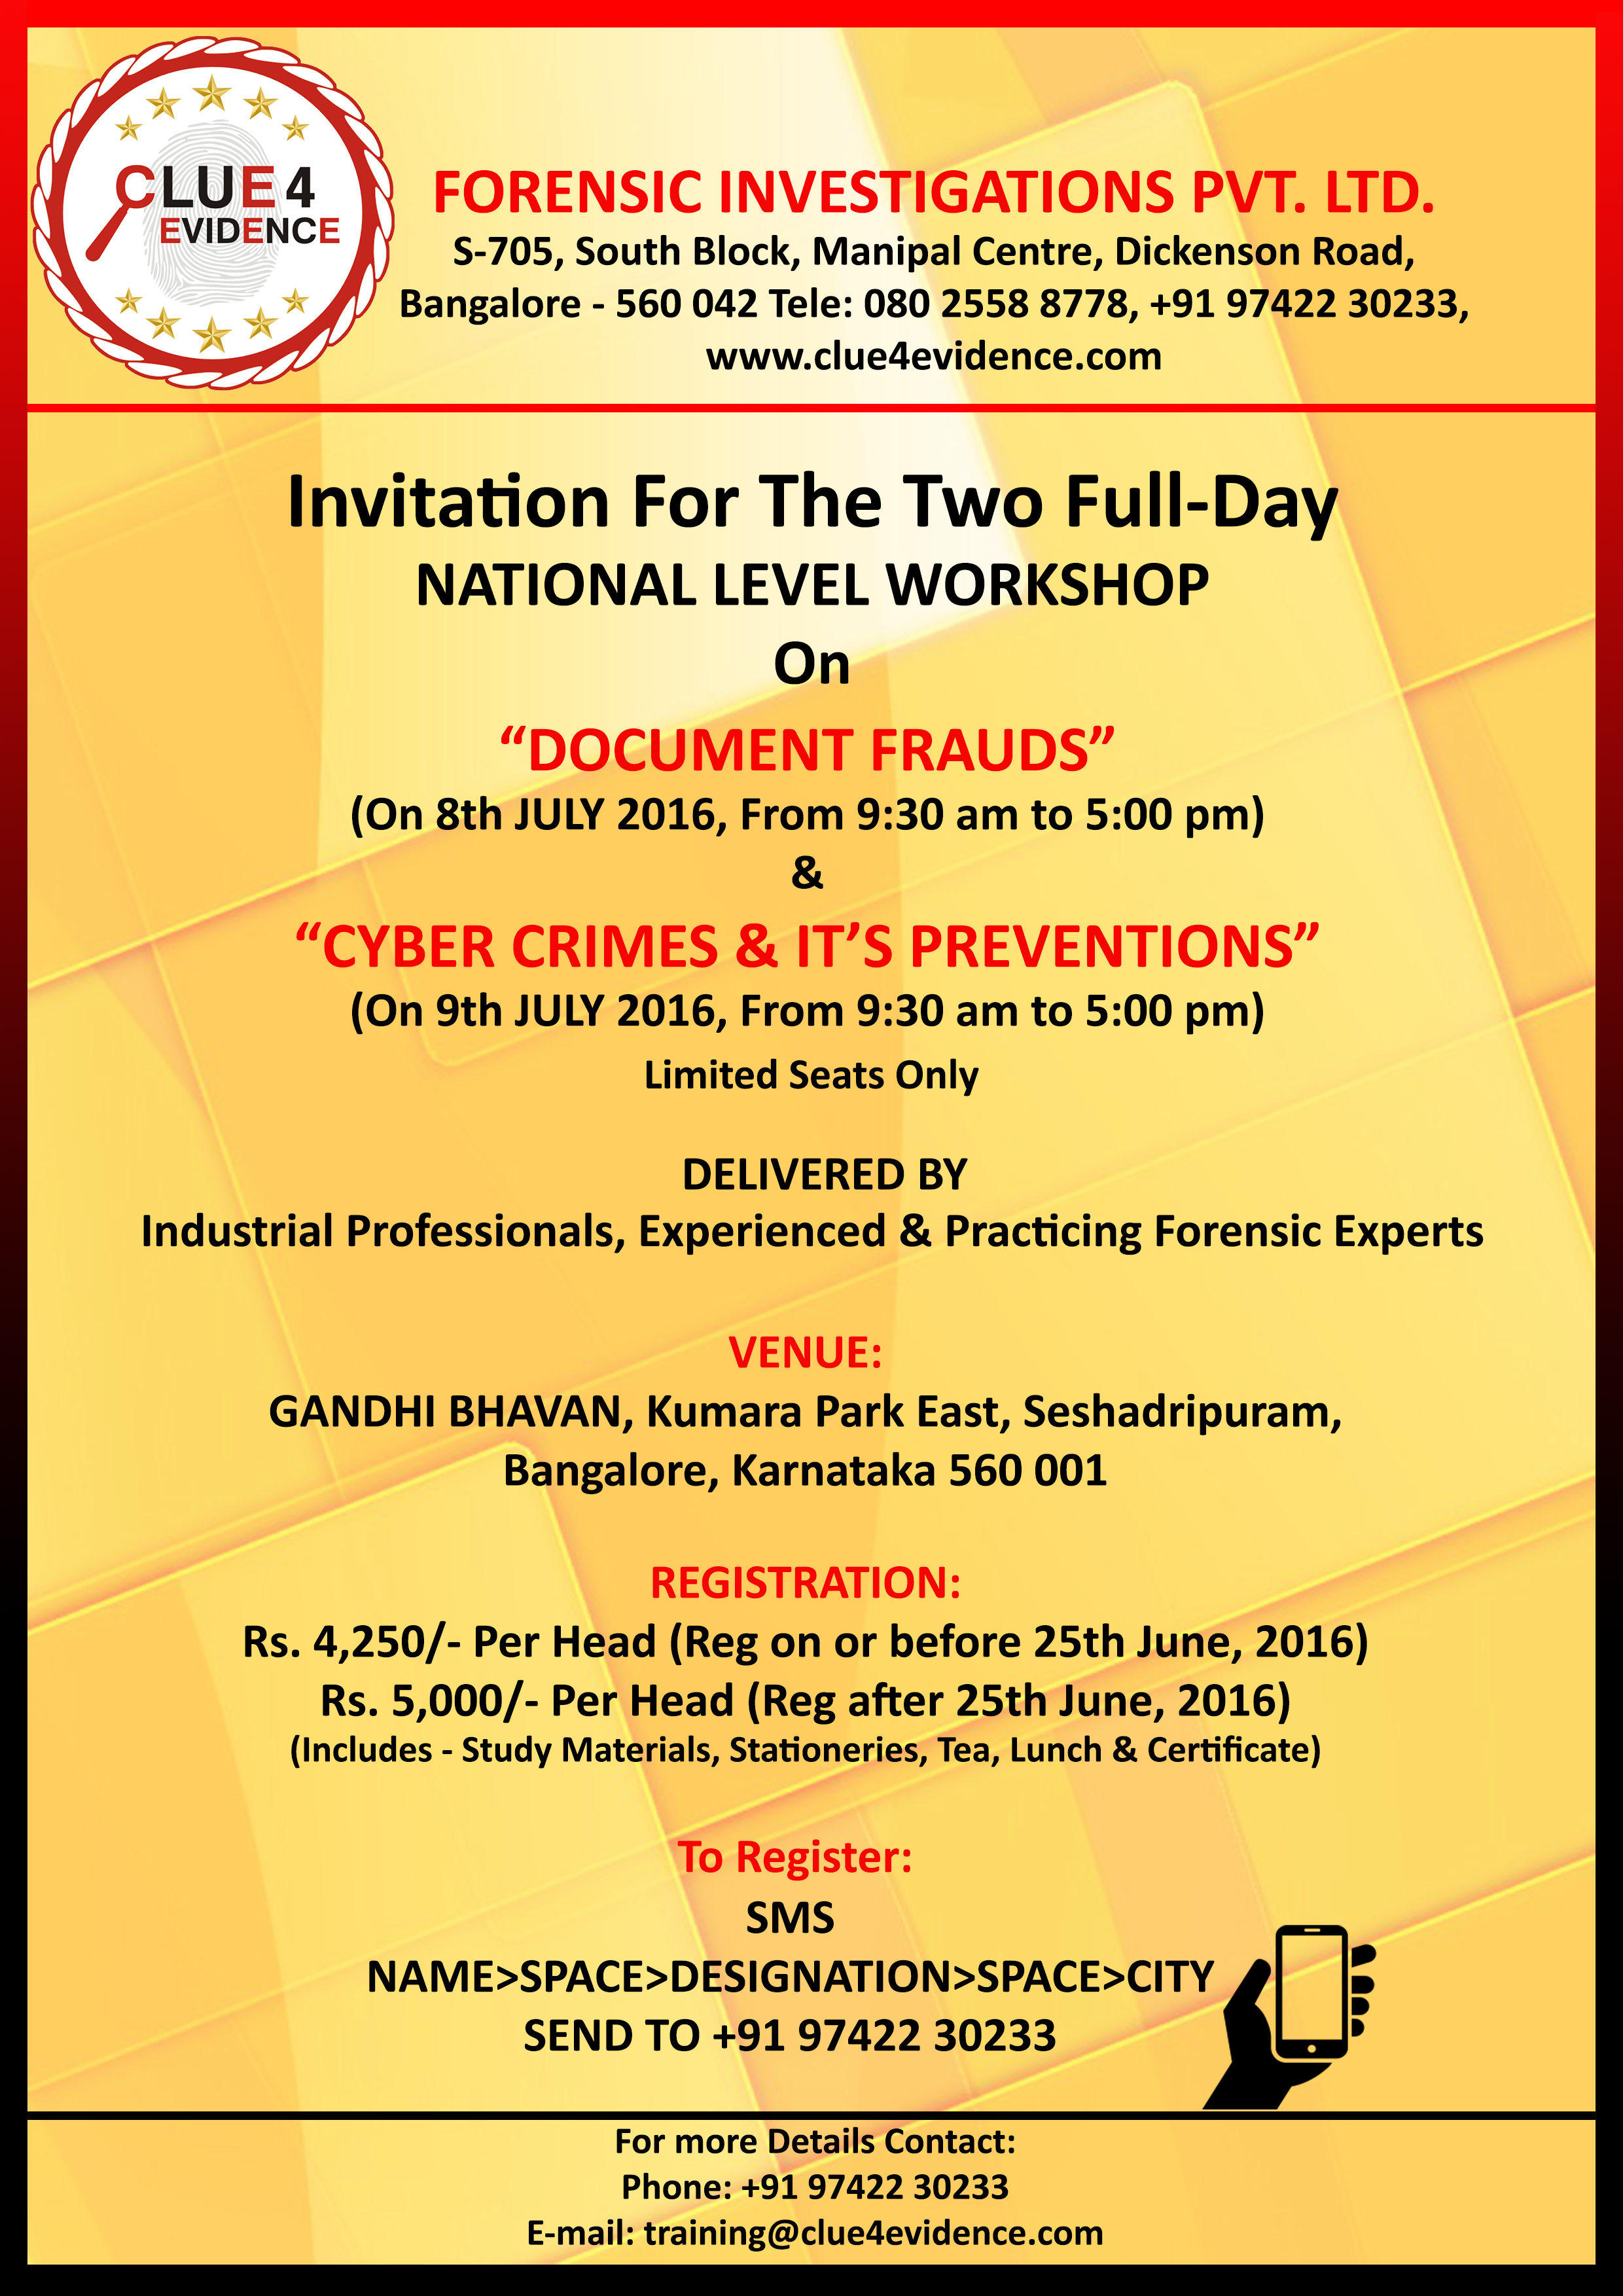 Clue 4 Evidence's Workshop on Documents Frauds & Cyber Crimes & It's Preventions